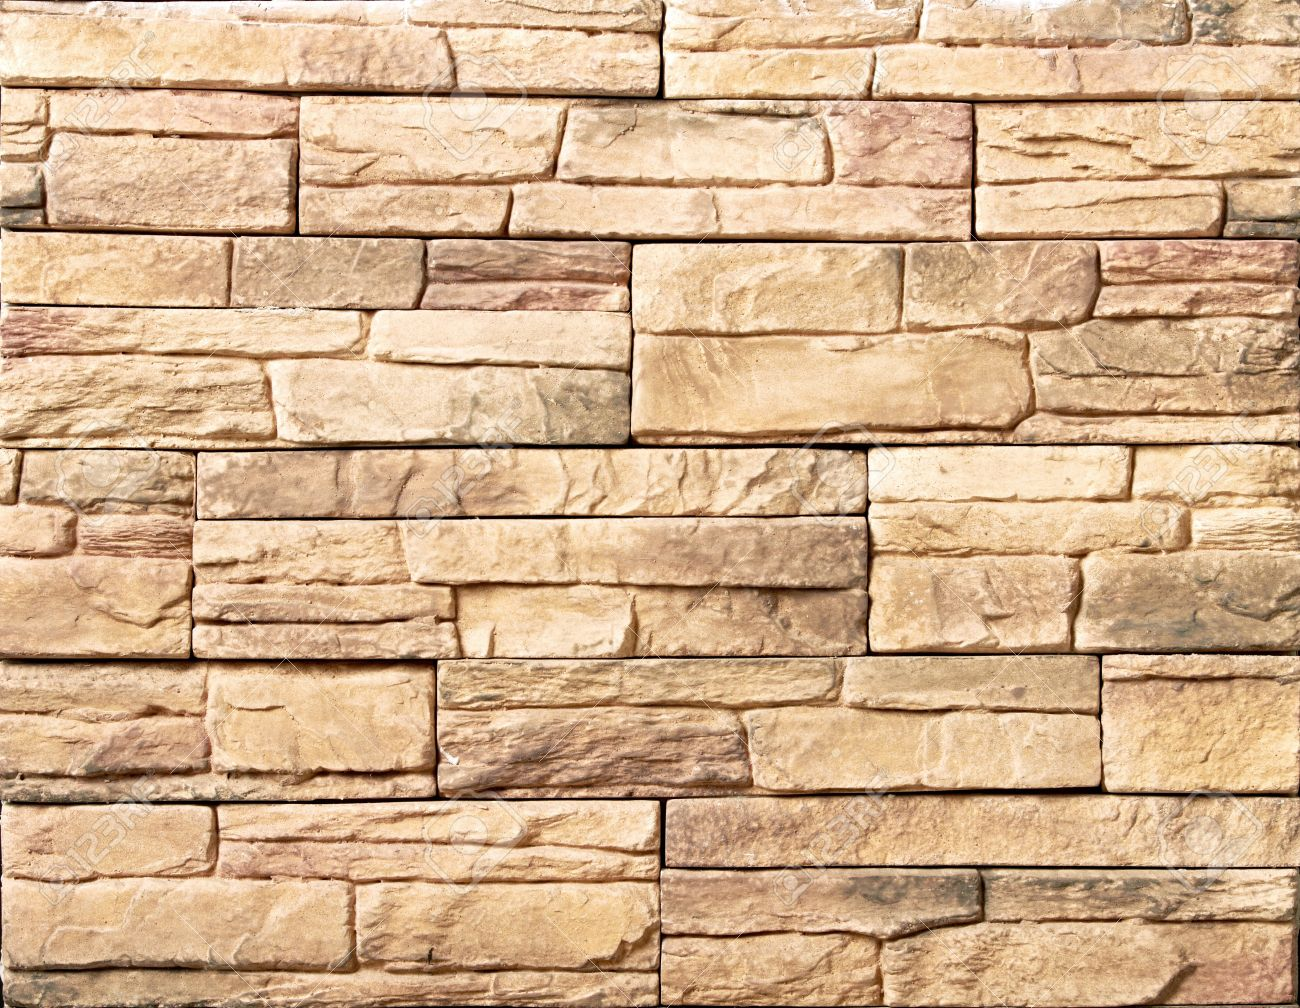 brick wall design as mortar background texture stock photo 12249185 - Brick Wall Design